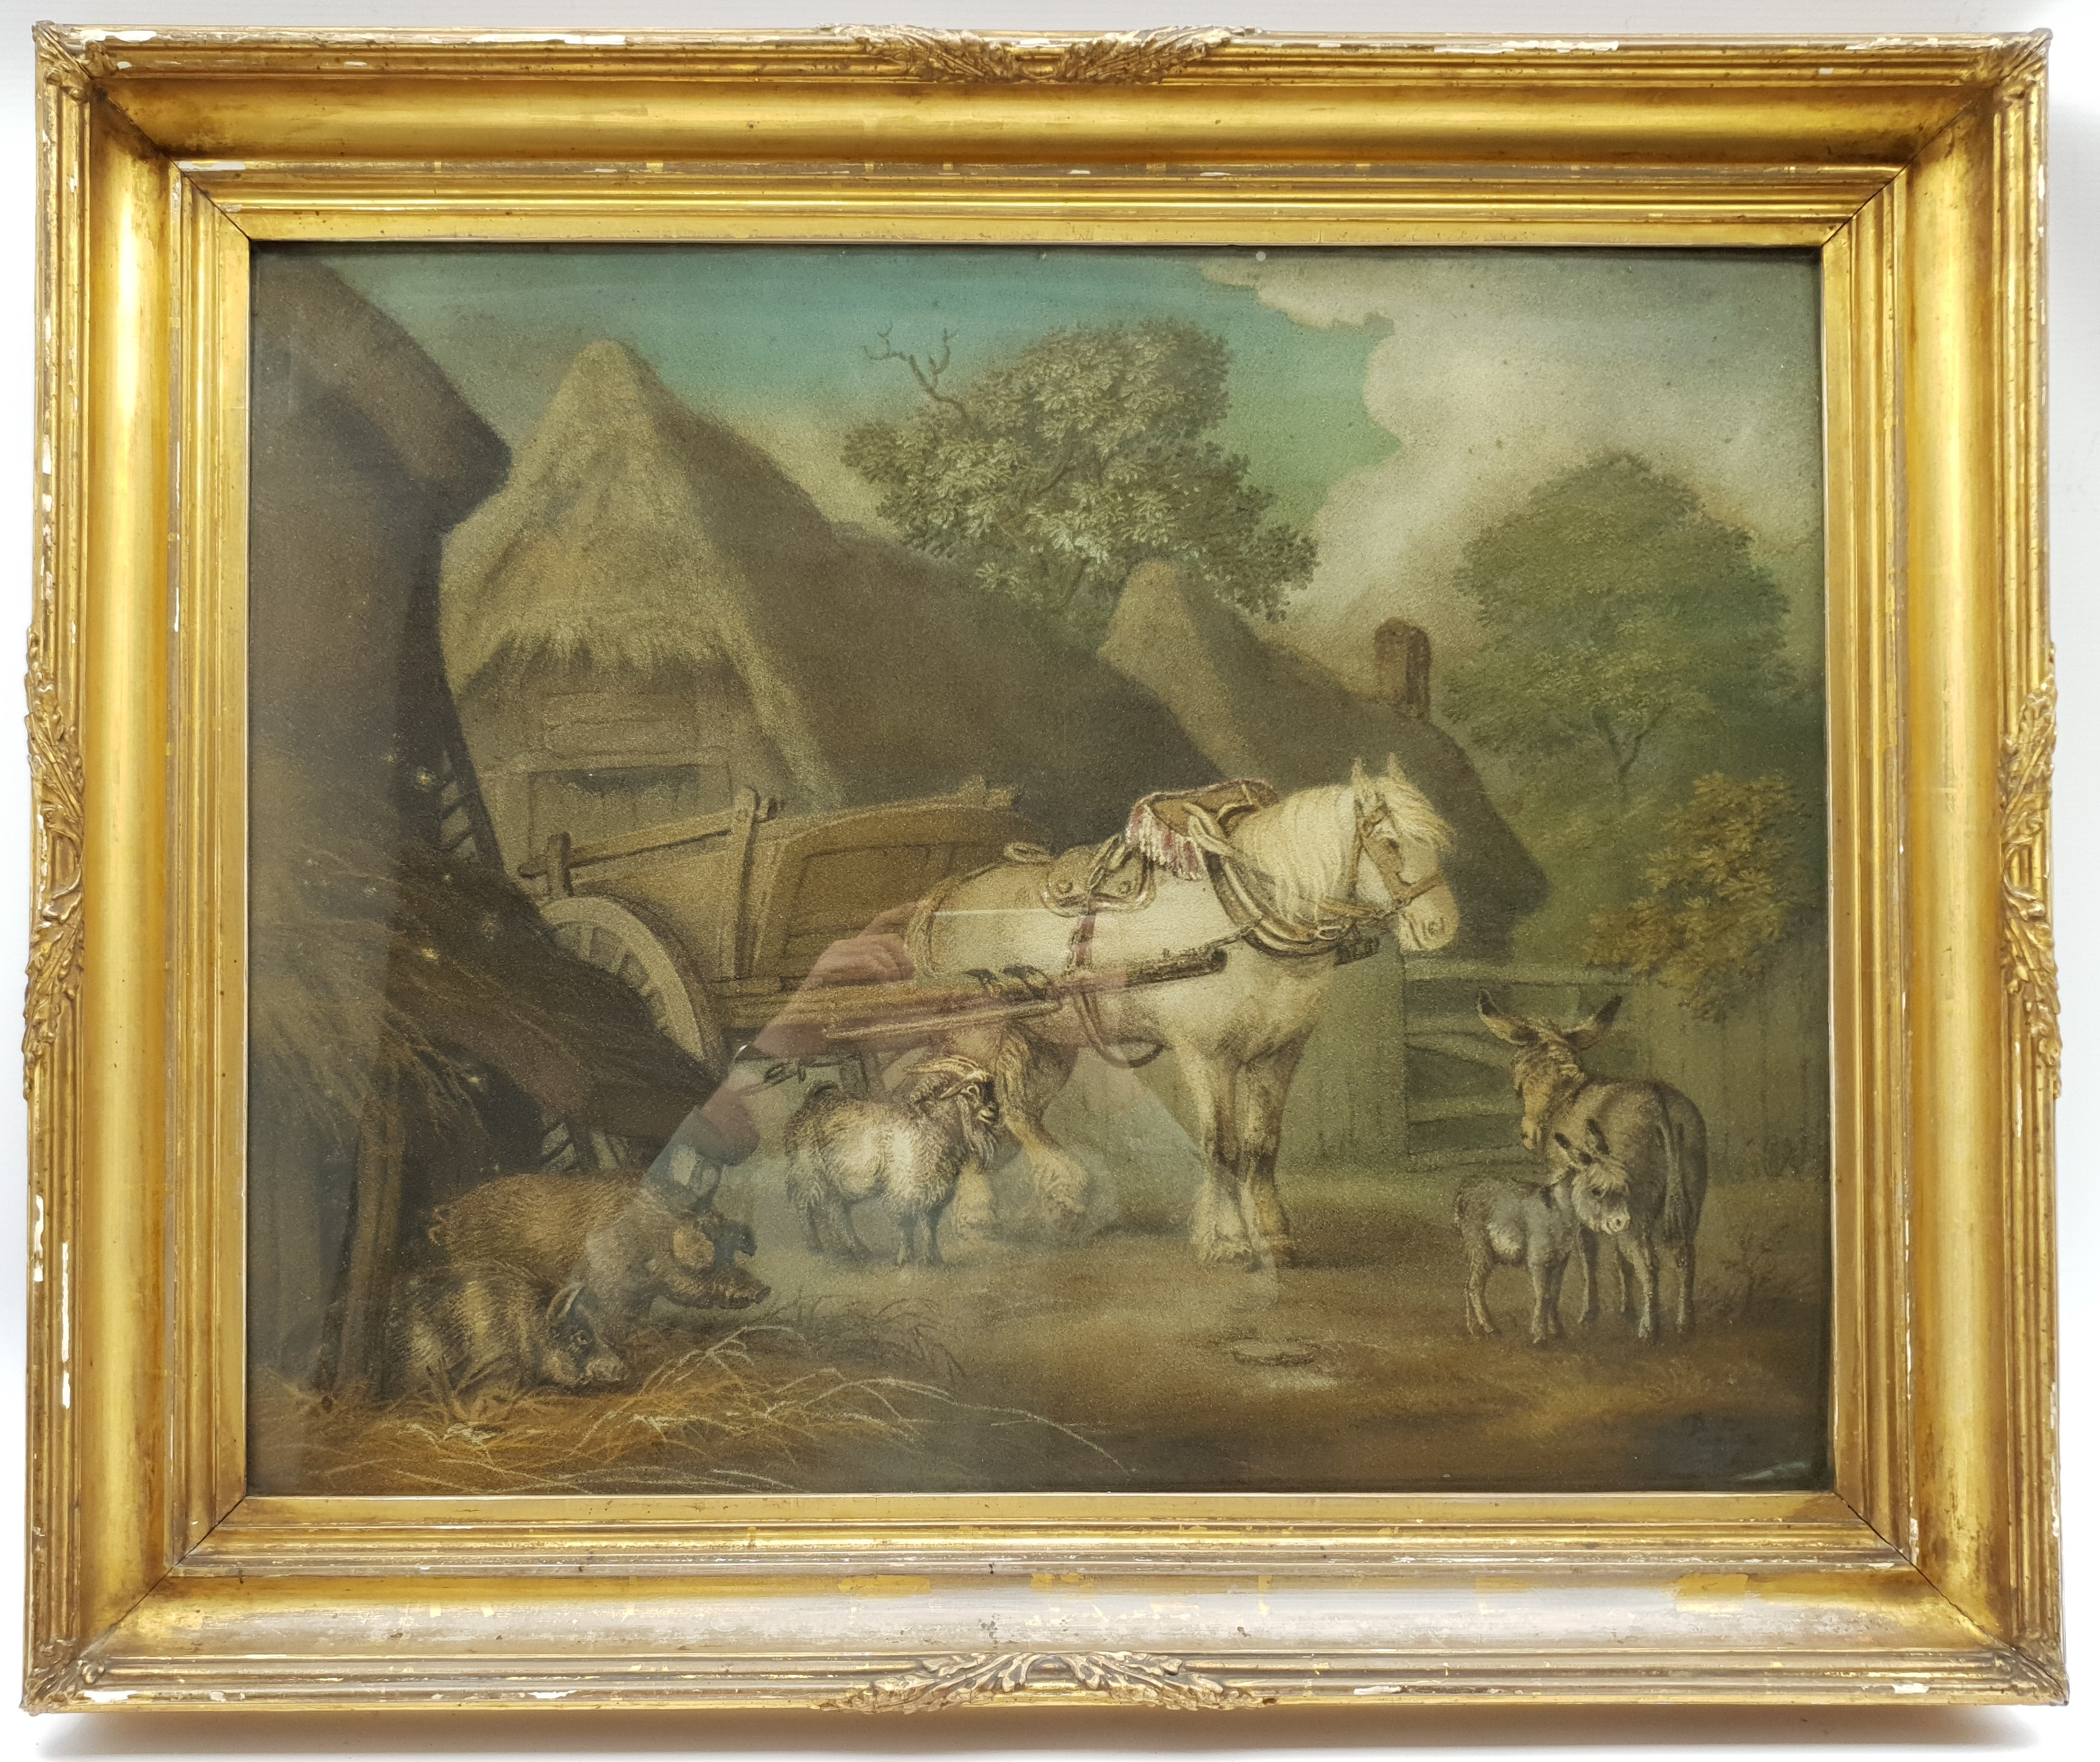 Benjamin Zobel (German/British 1762-1830): Animals in the Farmyard, 'Marmotinto' sand picture signed - Image 2 of 3